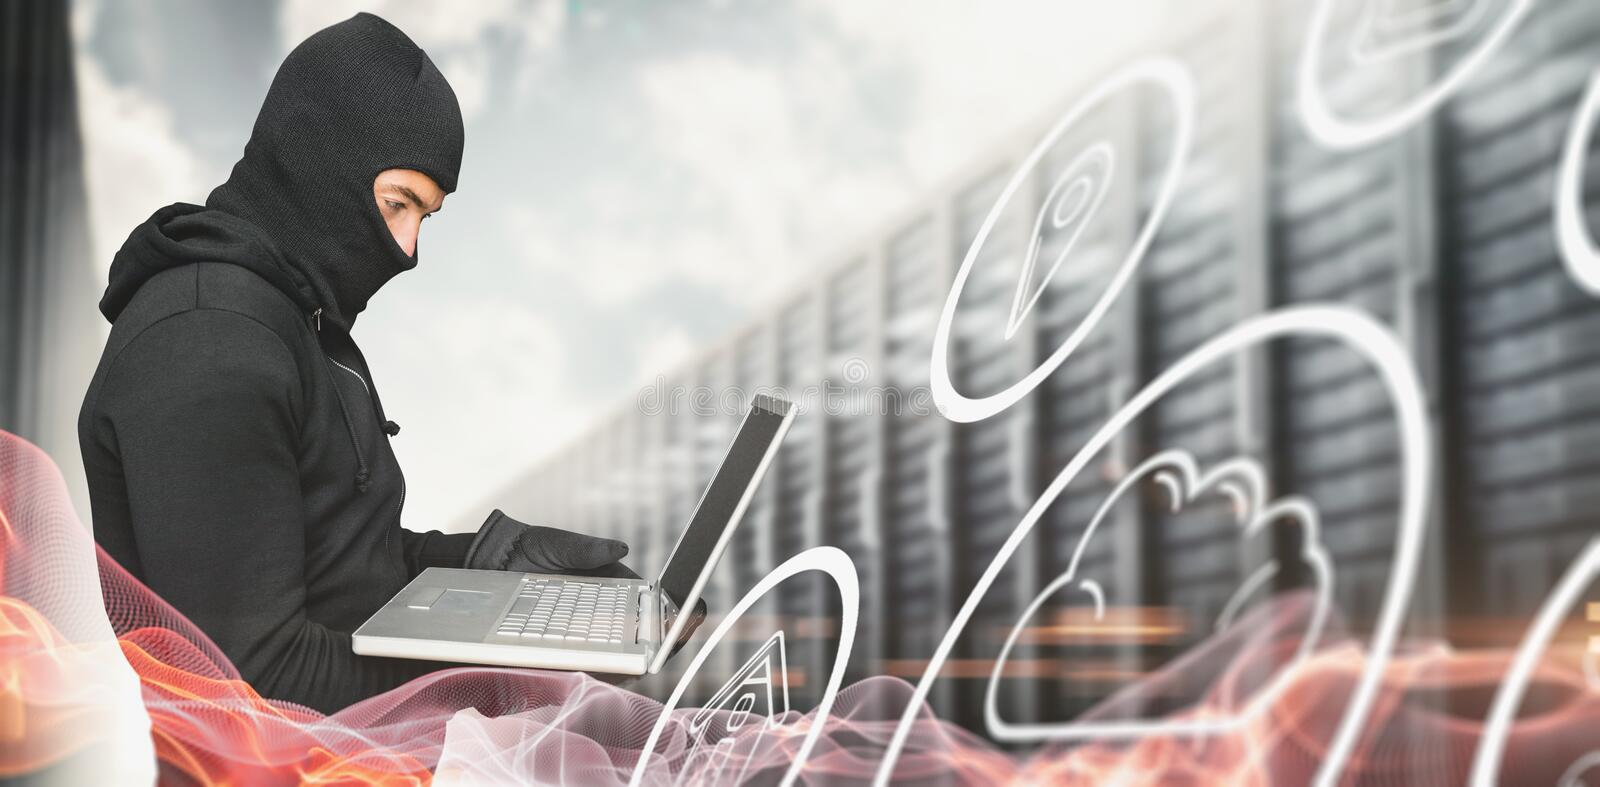 Composite image of side view of hacker using laptop stock image